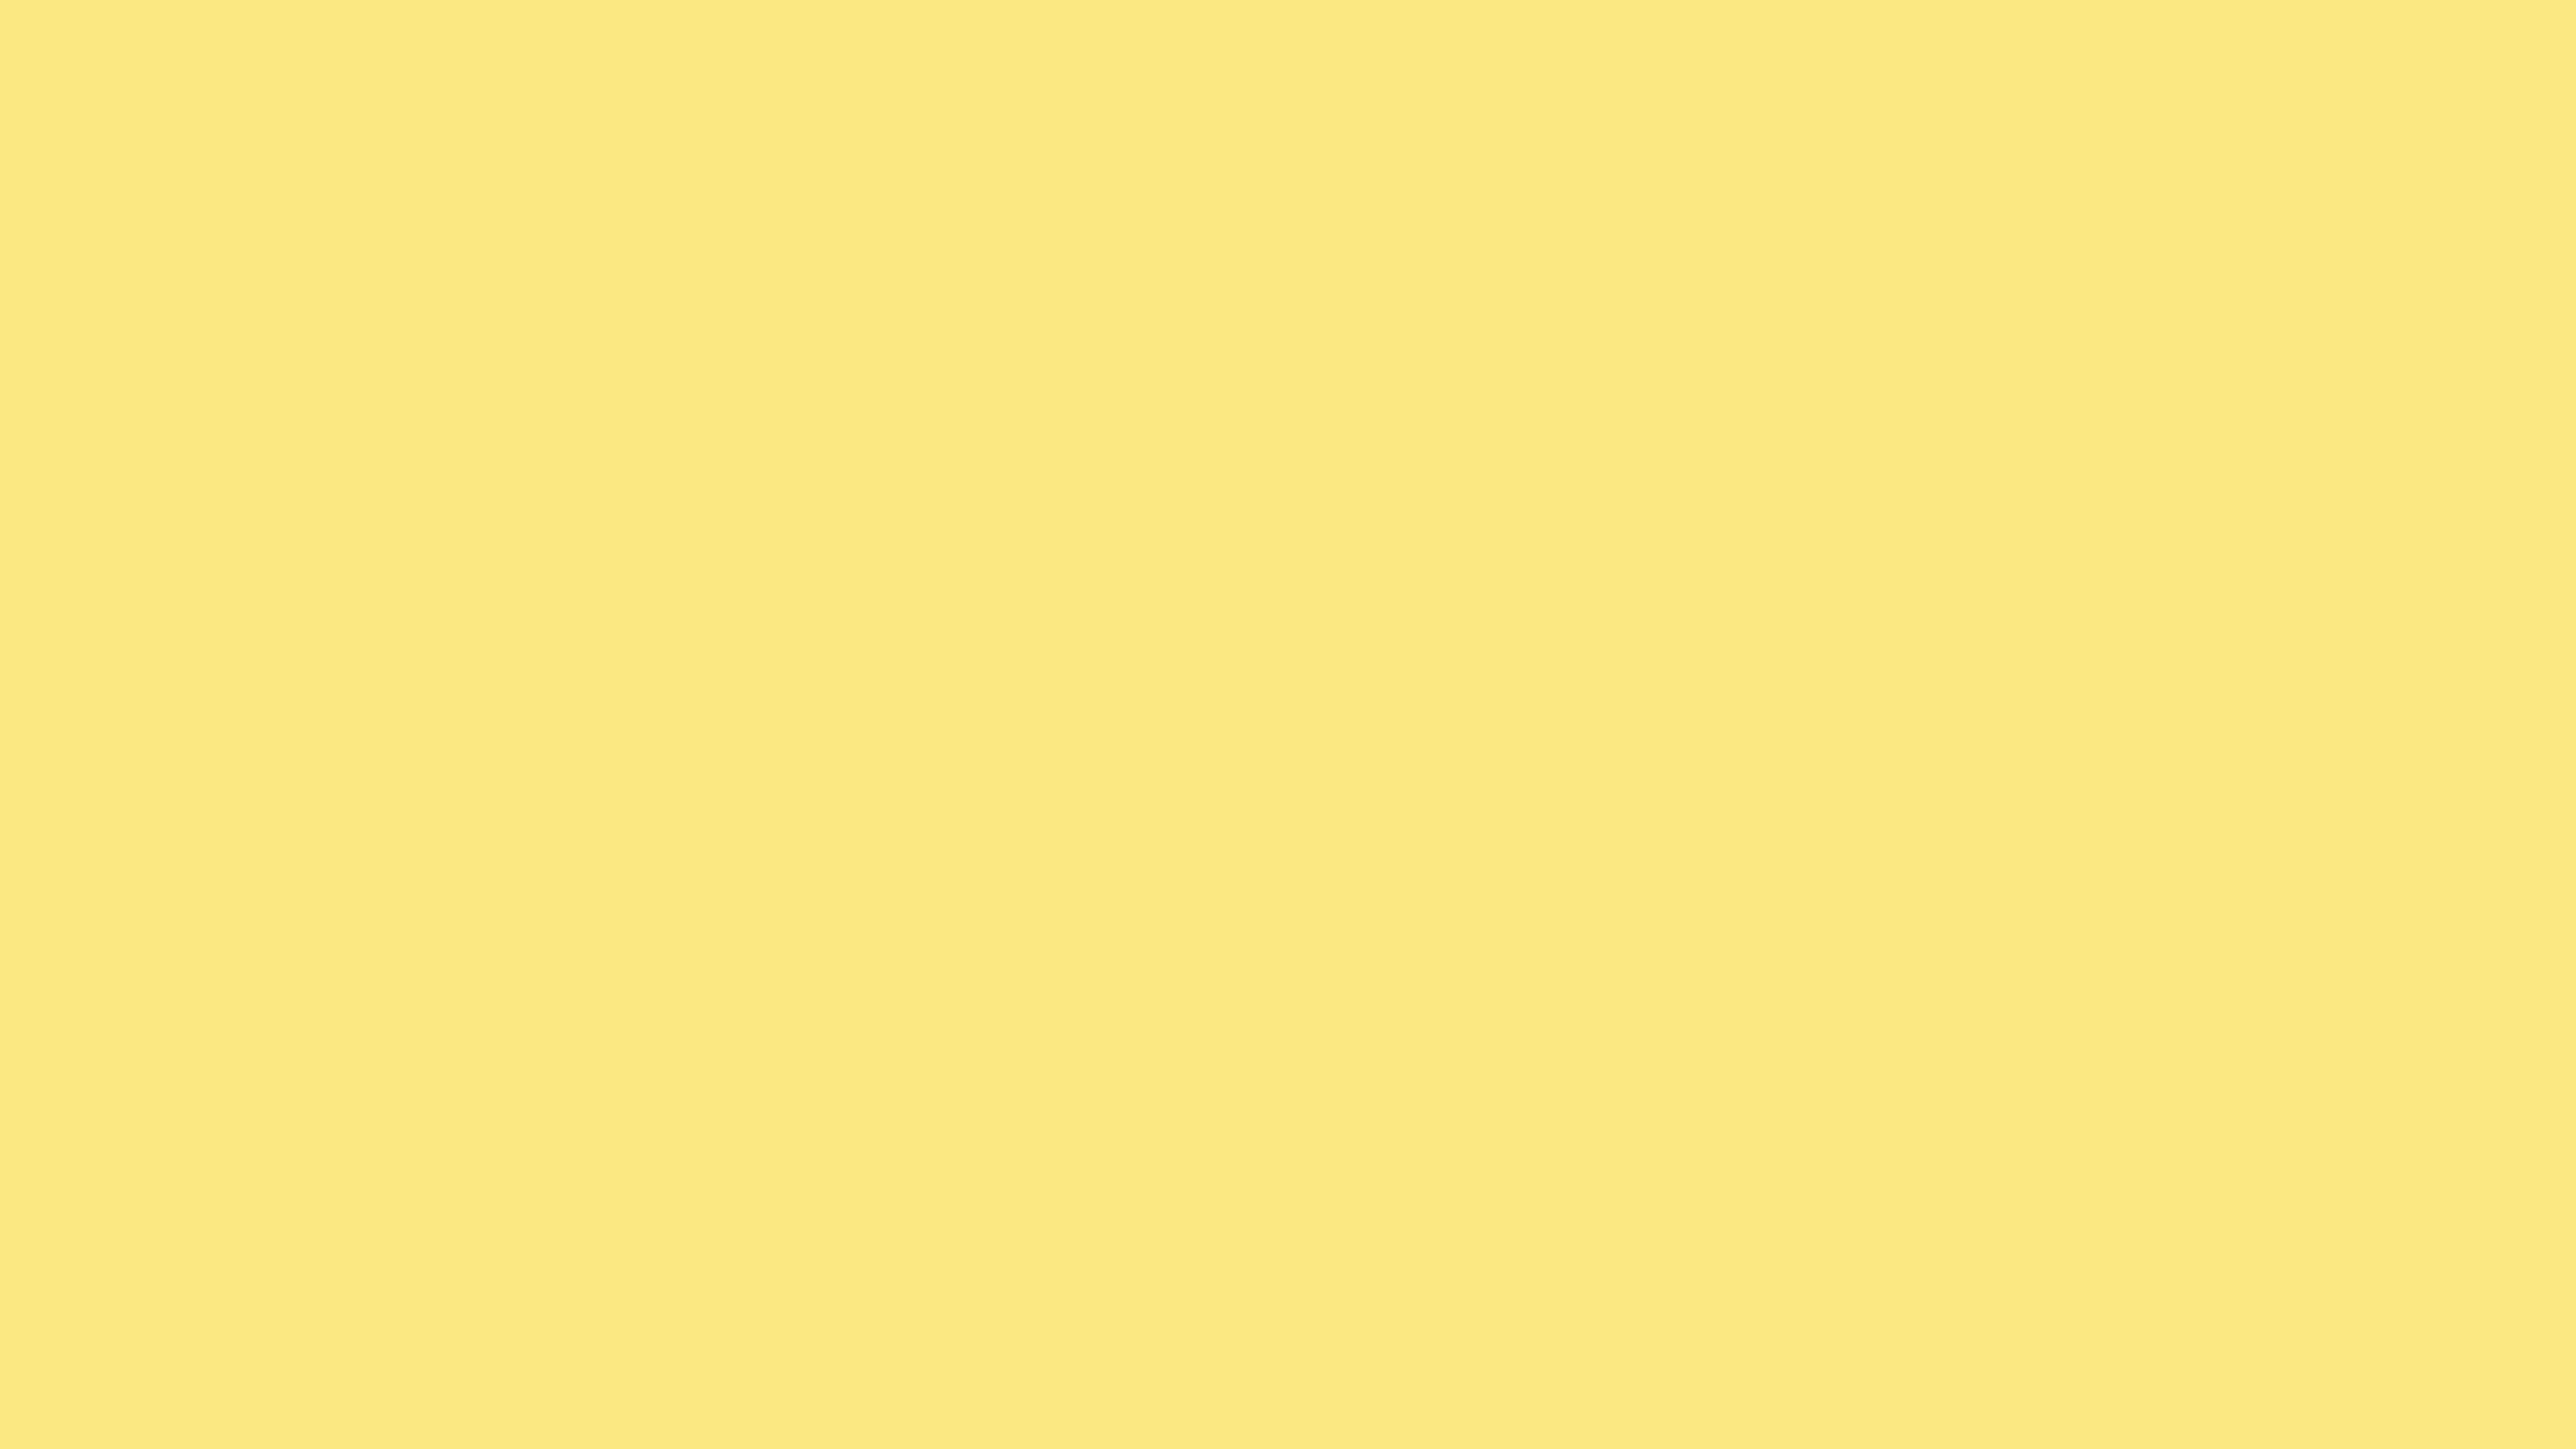 3840x2160 Yellow Crayola Solid Color Background